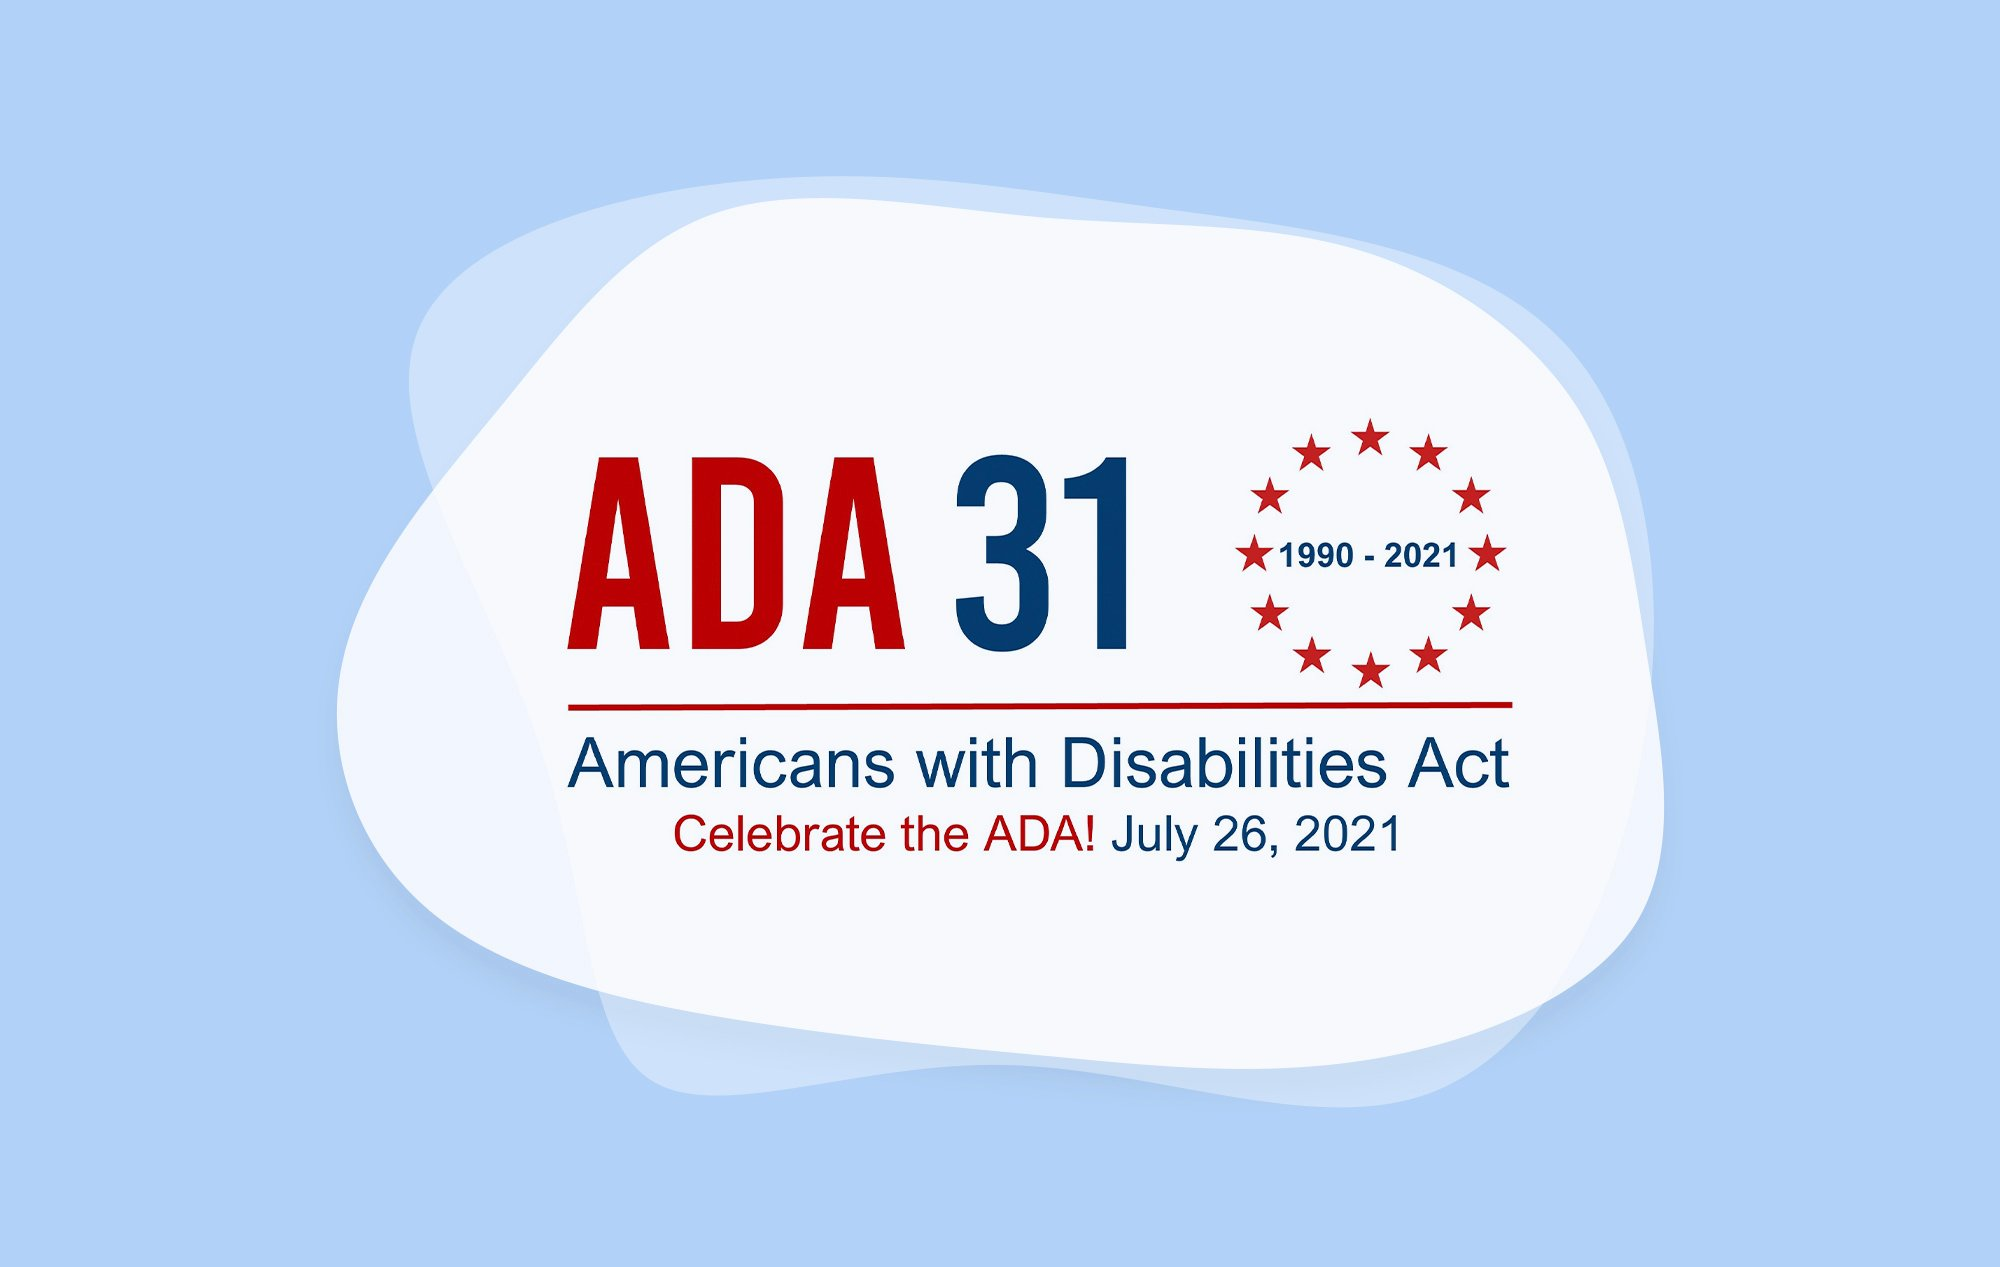 Red and blue logo that says ADA 31 with 1990-2021 surrounded by red stars in a circle. Text below says 'Americans with Disabilities Act, Celebrate the ADA! July 26, 2021.'